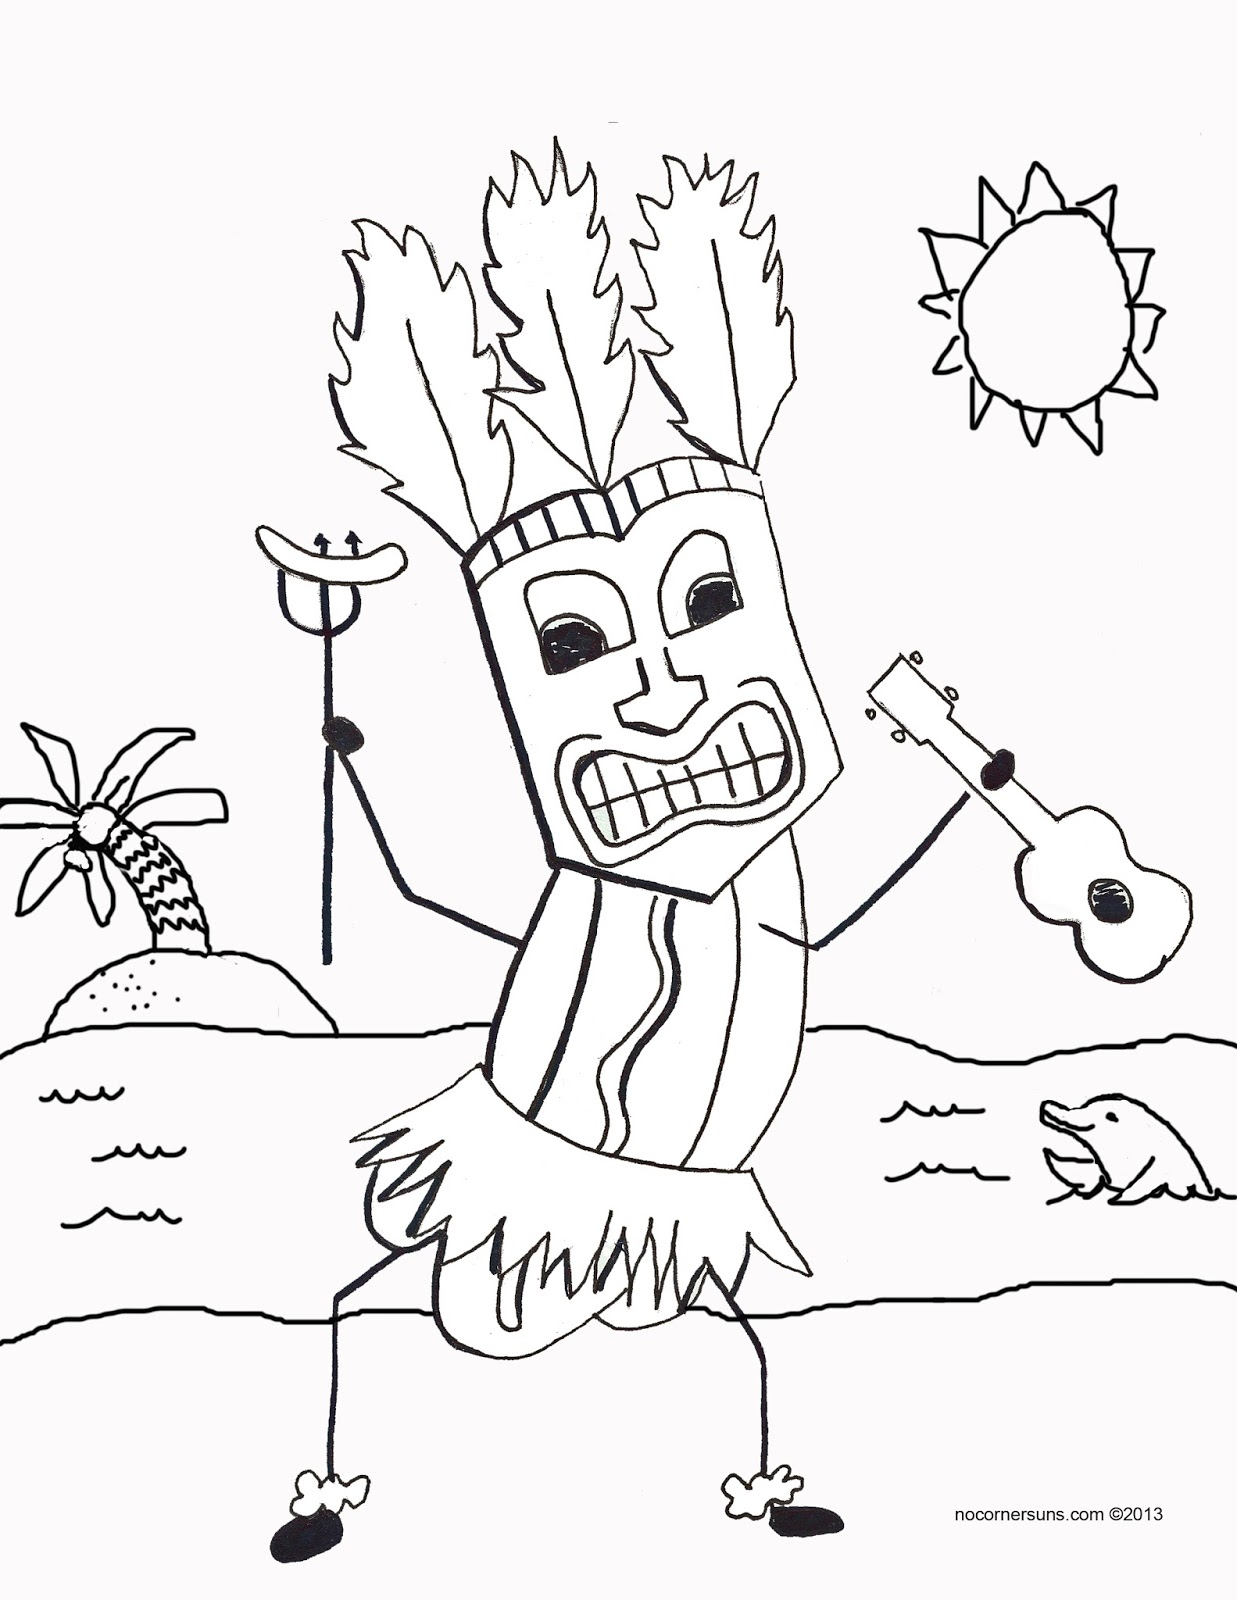 No Corner Suns Tiki Hot Dog Coloring Page